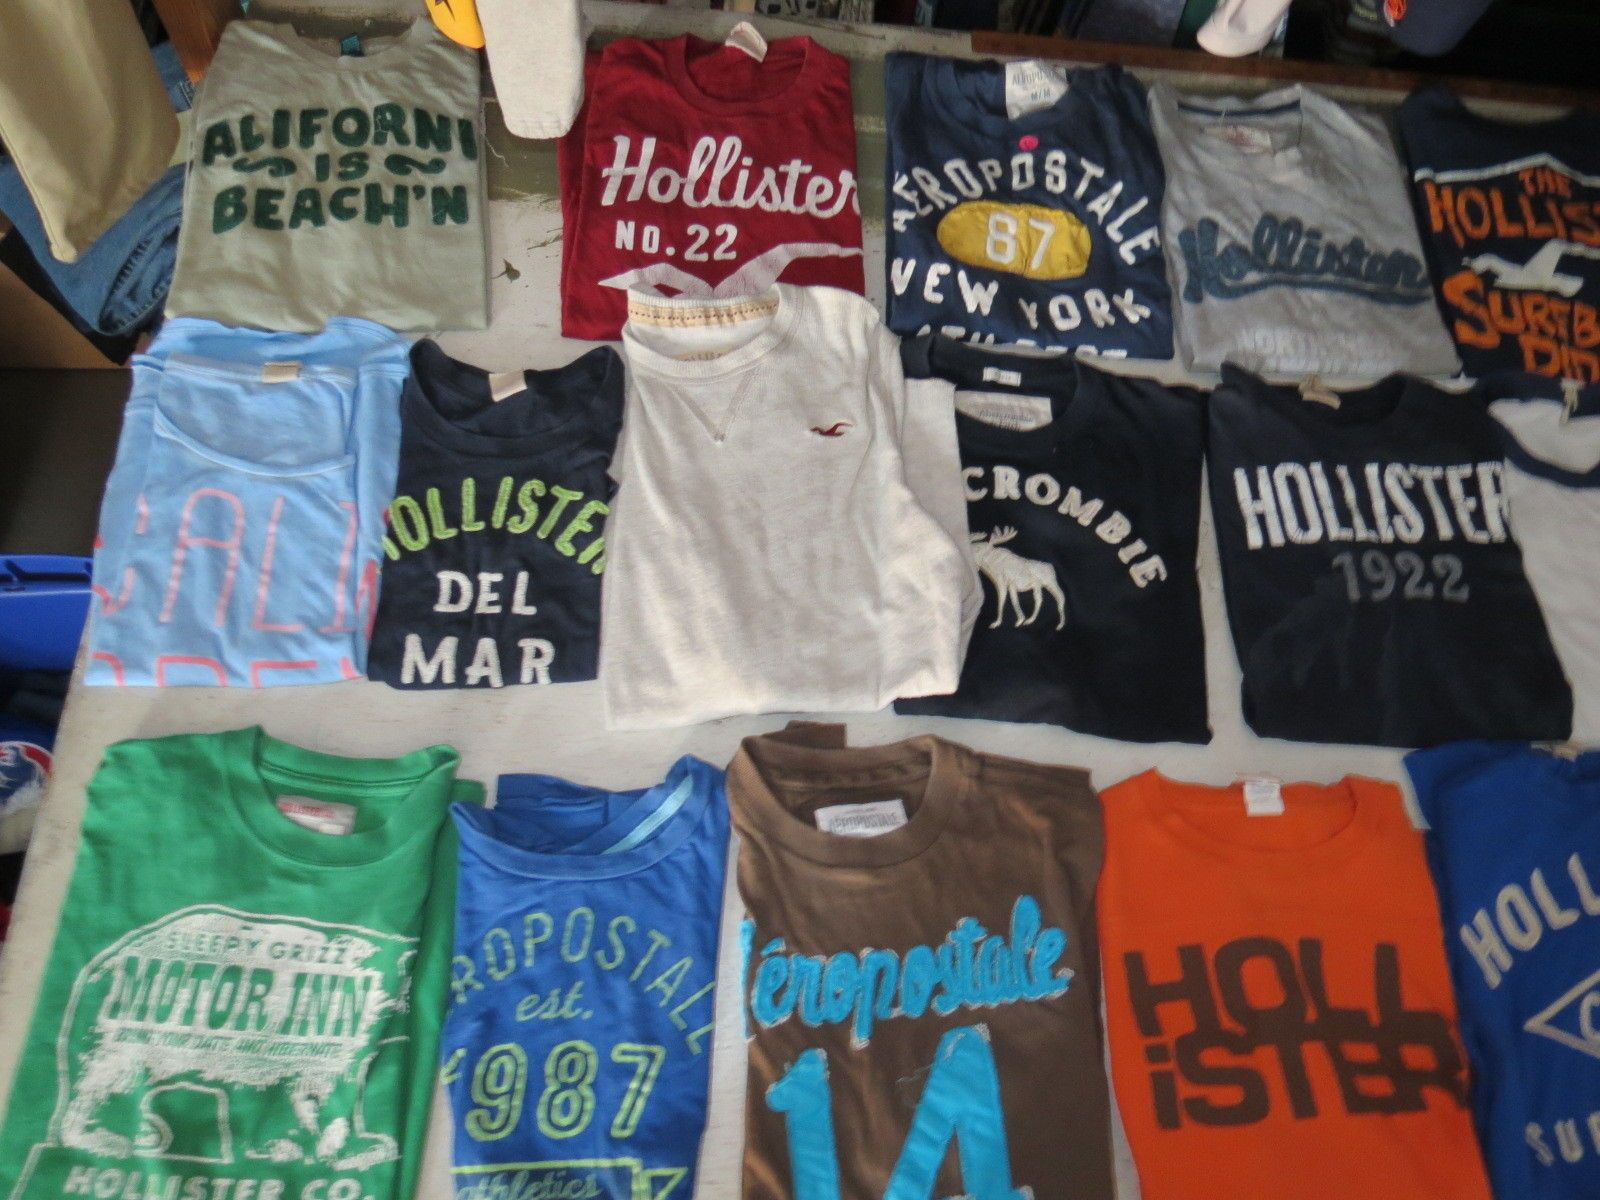 LOT OF 70 HOLLISTER T SHIRTS TEES ABERCROMBIE FITCH DISTRESSED MOST MENS JUNIOR https://t.co/JqZLwvJhWU https://t.co/5Qkvio9qVk